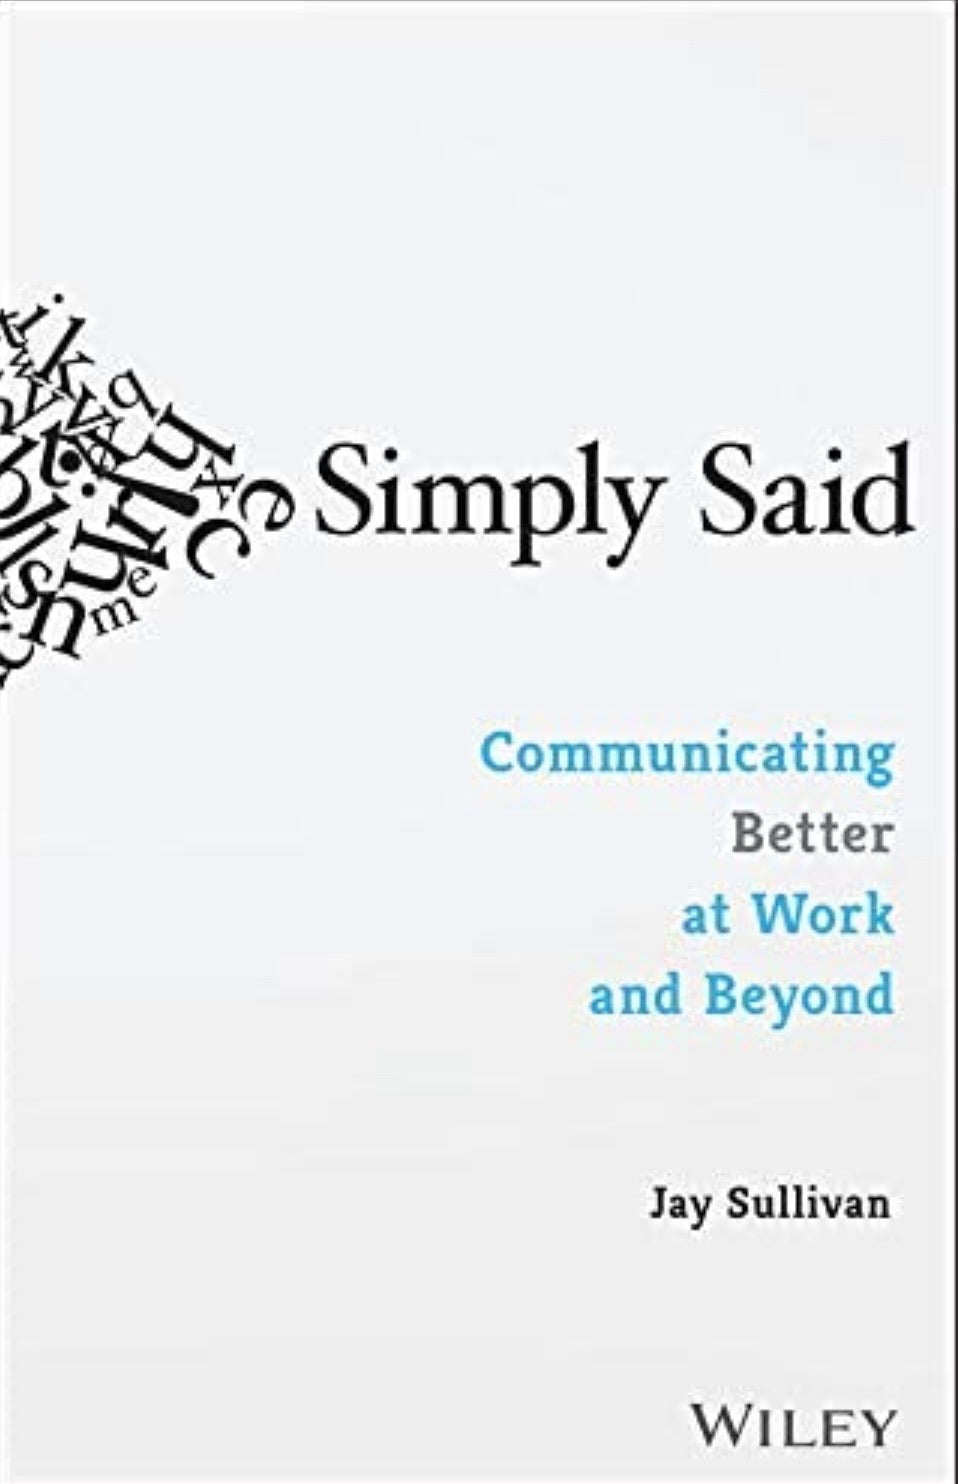 Simply Said Communicating Better At Work by Jay Sullivan